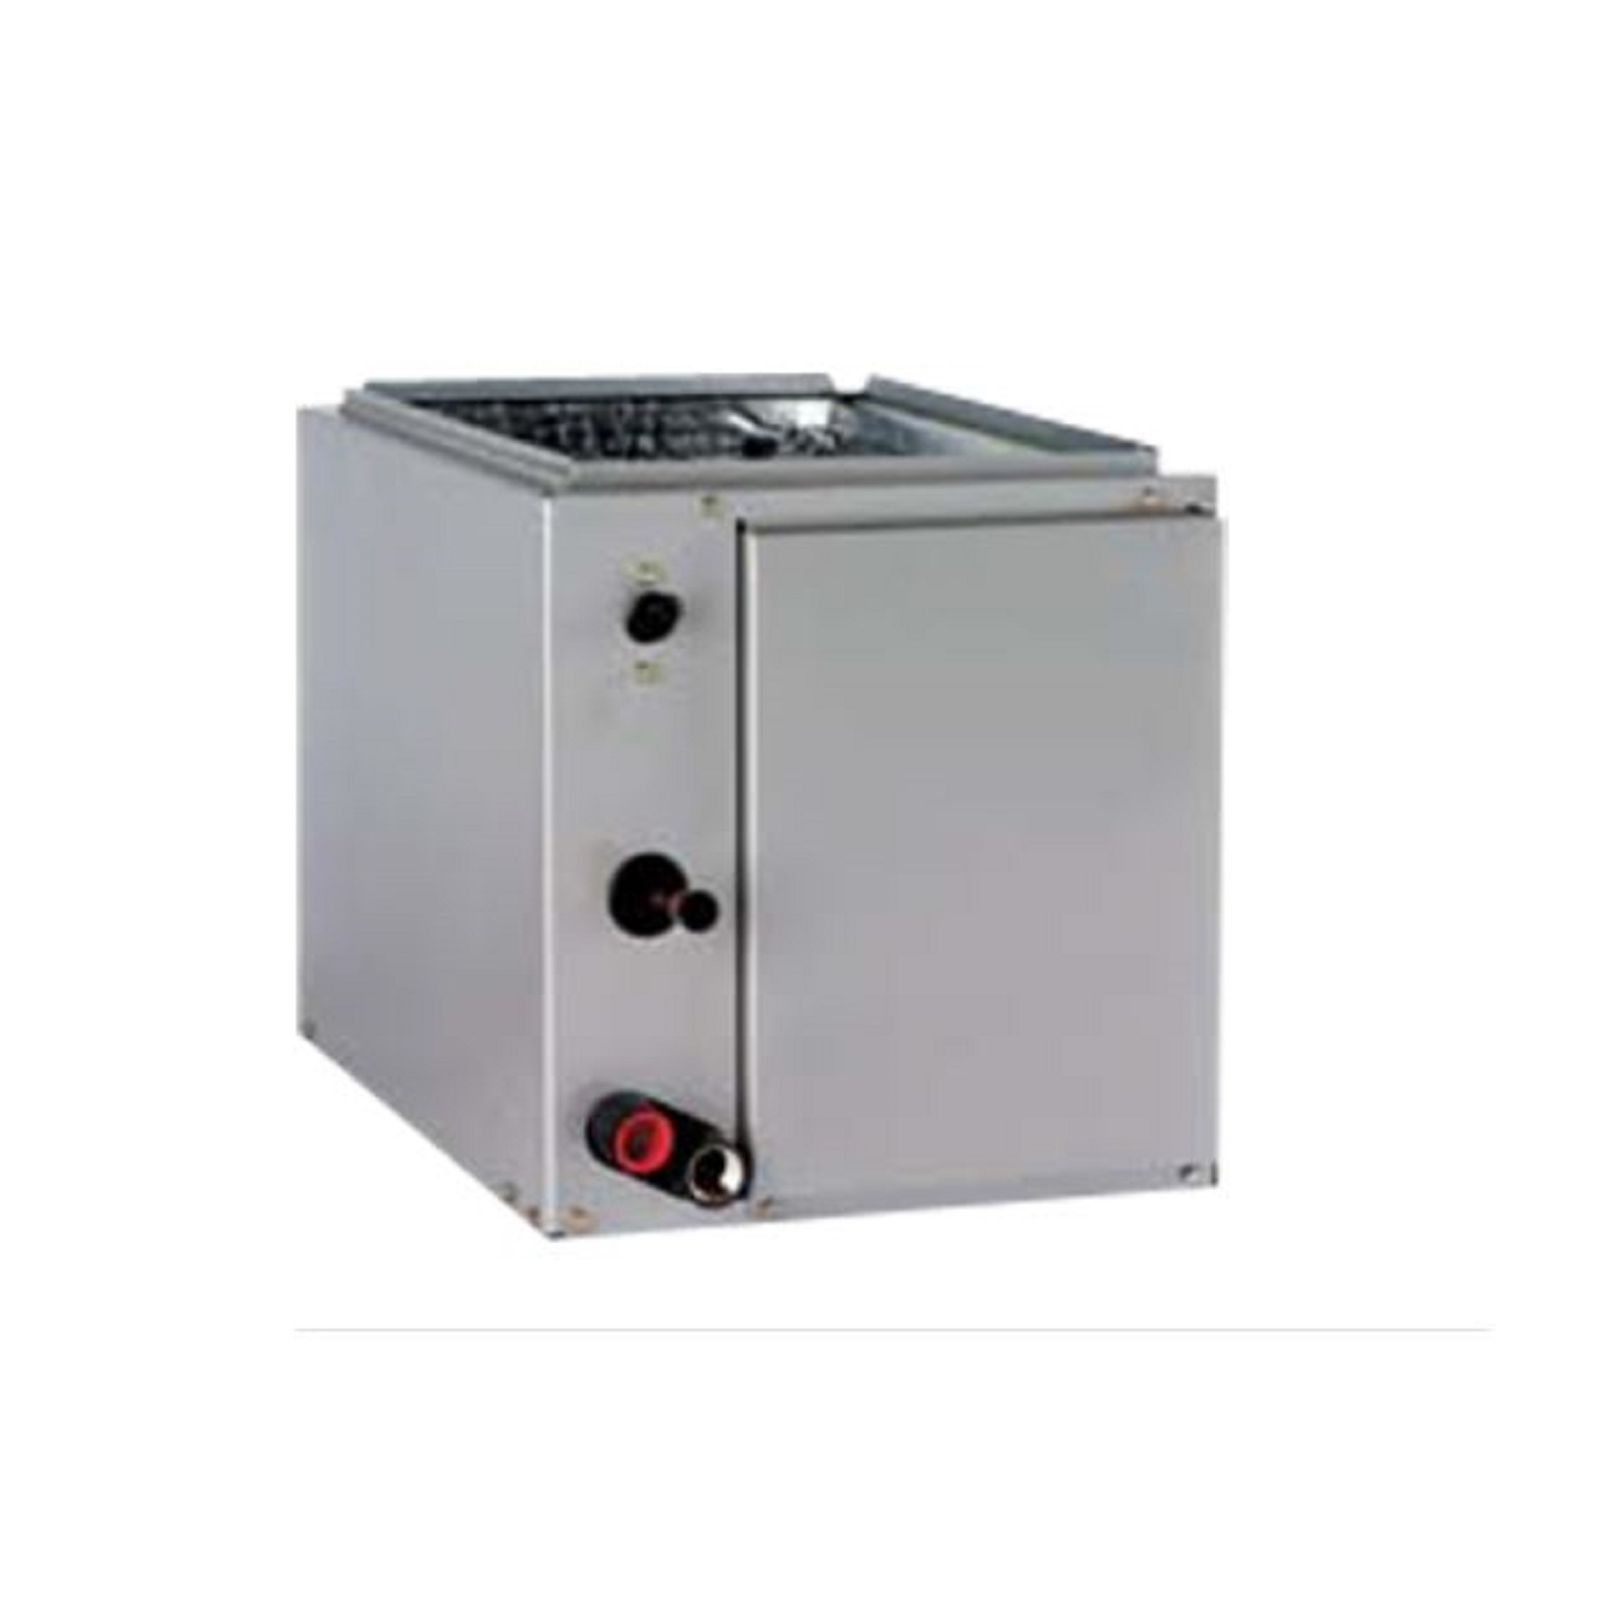 "Tempstar END4X43L24A - 3 1/2 Ton, R410A, Cased Up/Down Flow, N Type Evaporator Coil, With TXV, 24.5"" Wide"